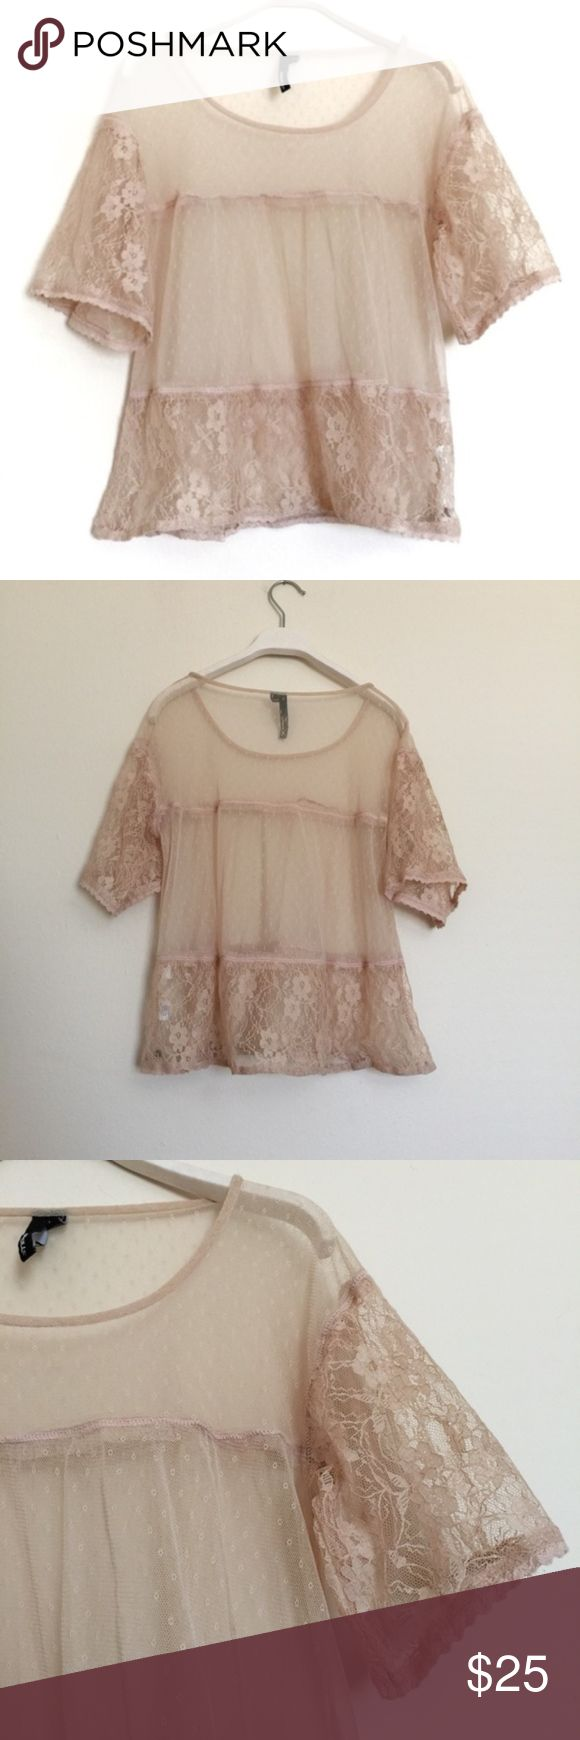 """O'Neill cream lace sheer swim coverup blouse Small O'Neill cream lace sheer swim coverup blouse, excellent condition. Lace coverup blouse in a cream color. Delicate floral lace sleeves and hem, romantic feel with pleats. Pit to pit 19"""", length 20"""". O'Neill Swim Coverups"""